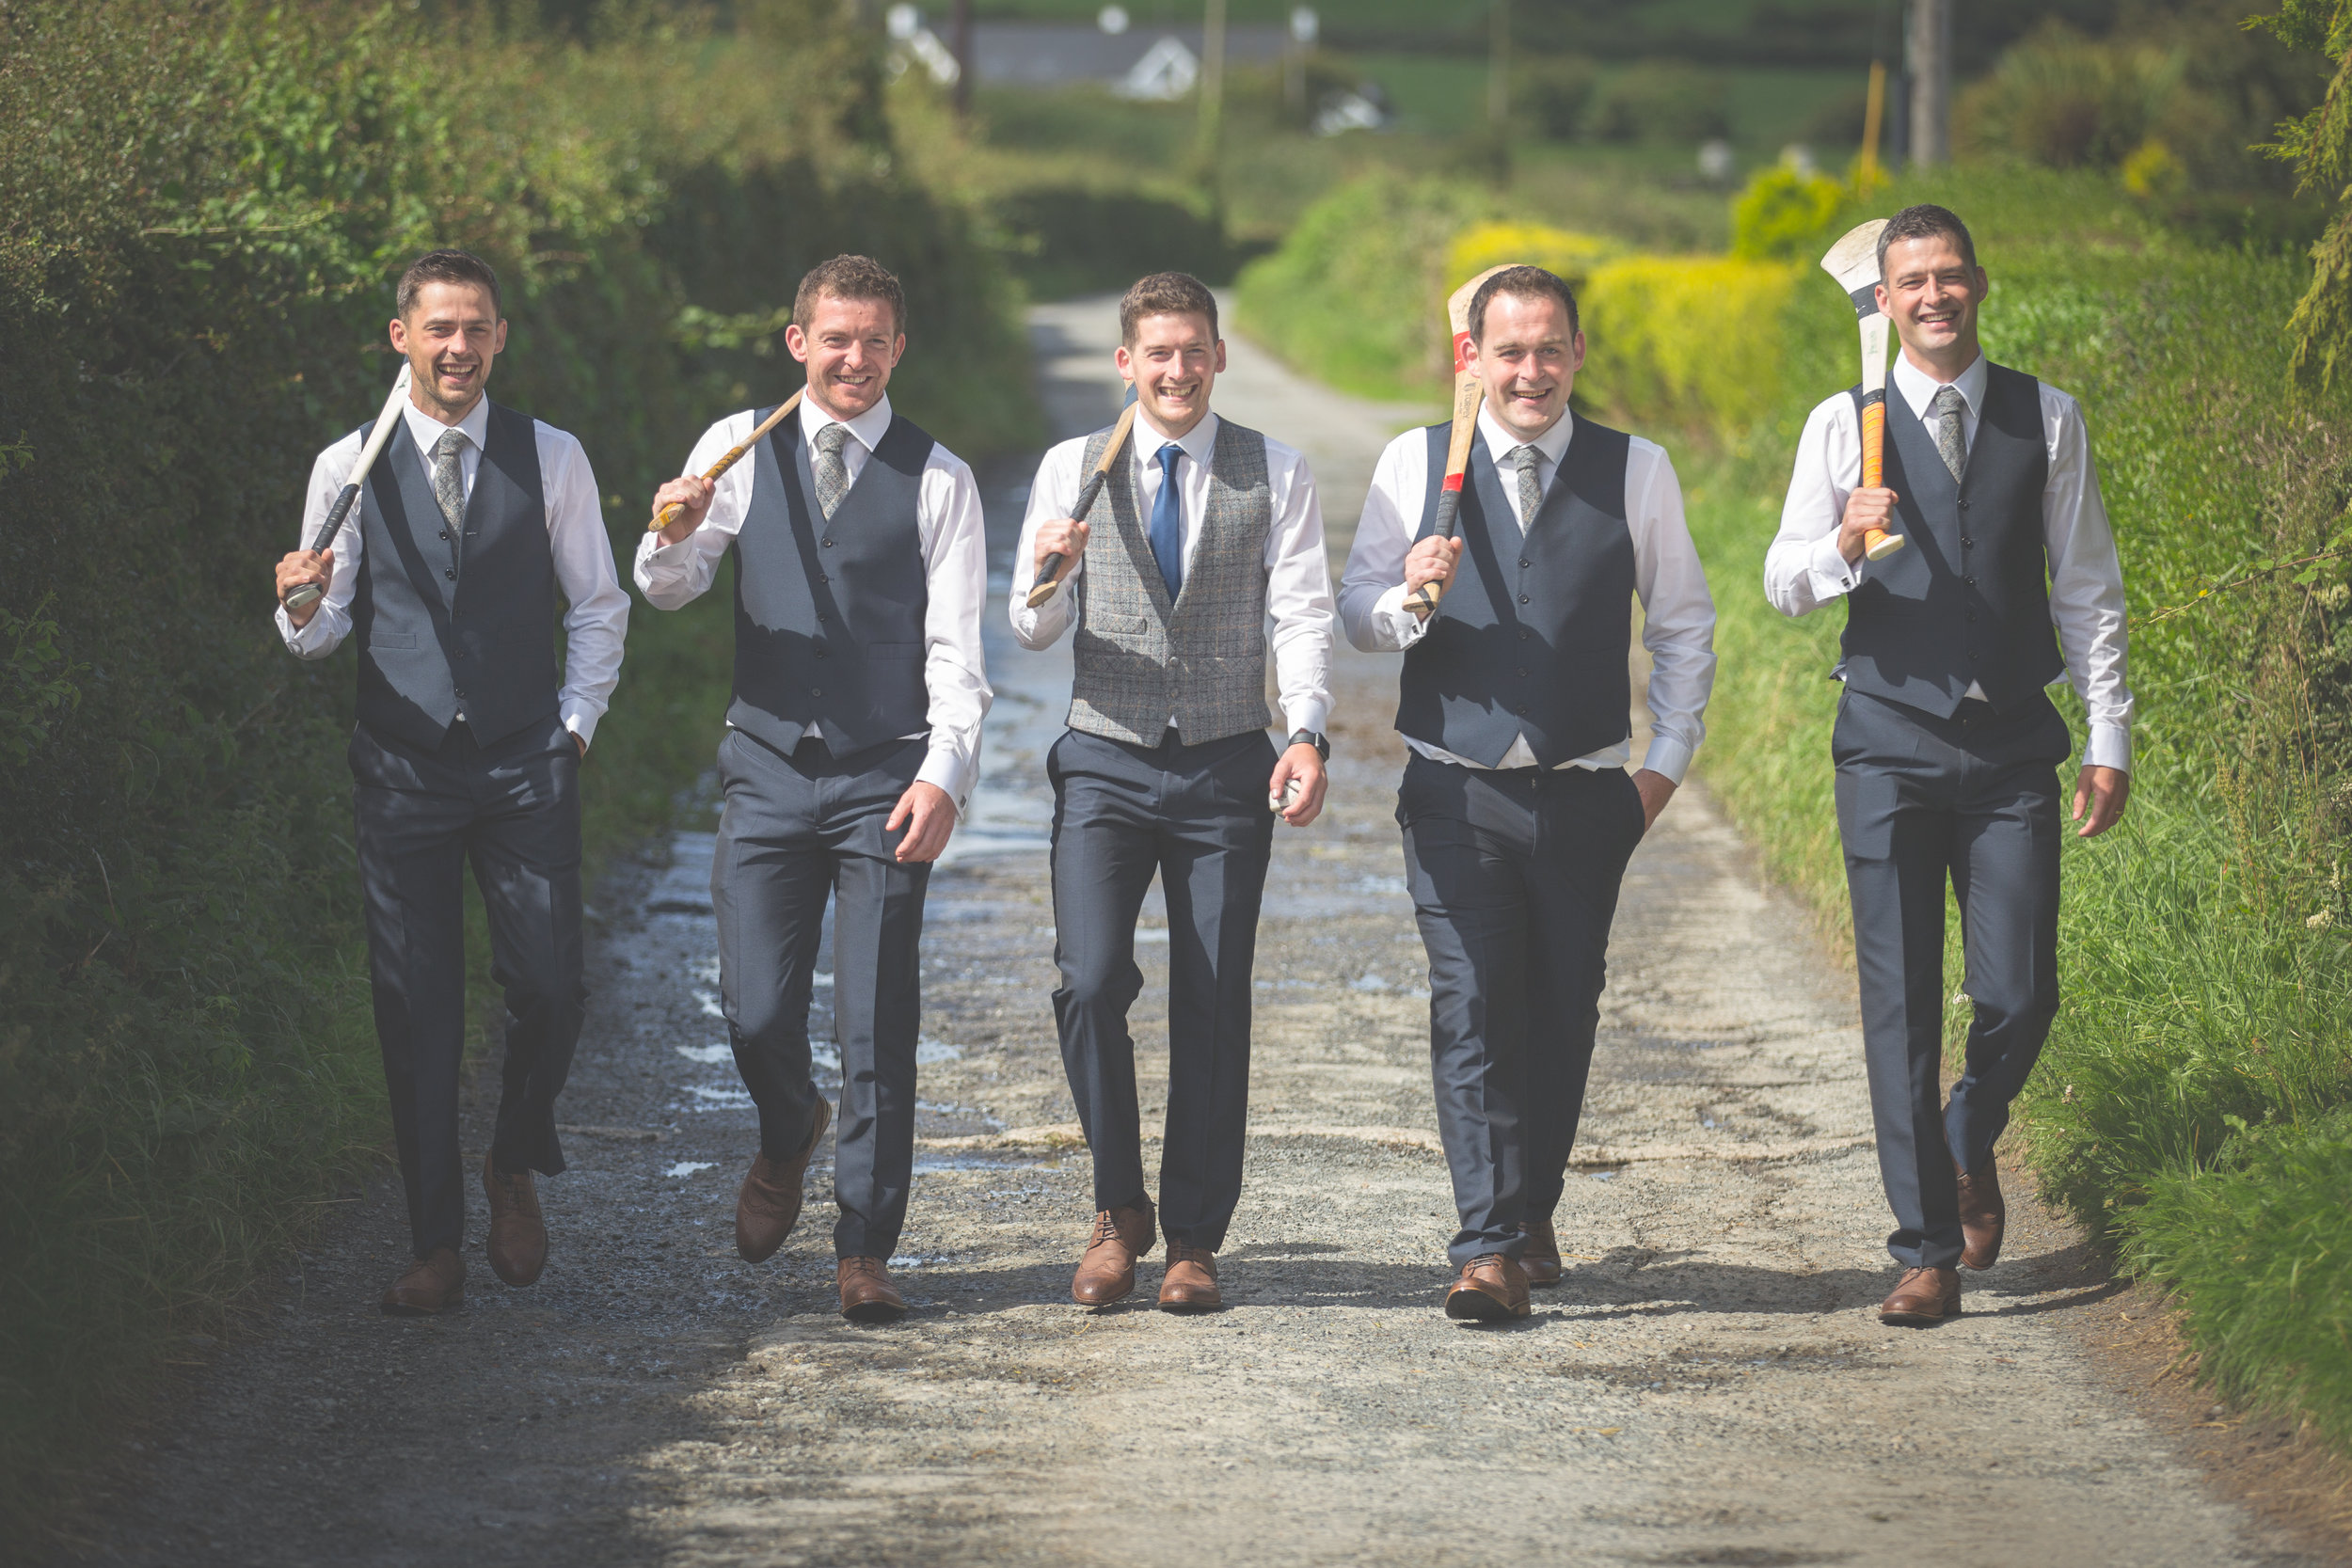 Brian McEwan Wedding Photography | Carol-Anne & Sean | Groom & Groomsmen-60.jpg